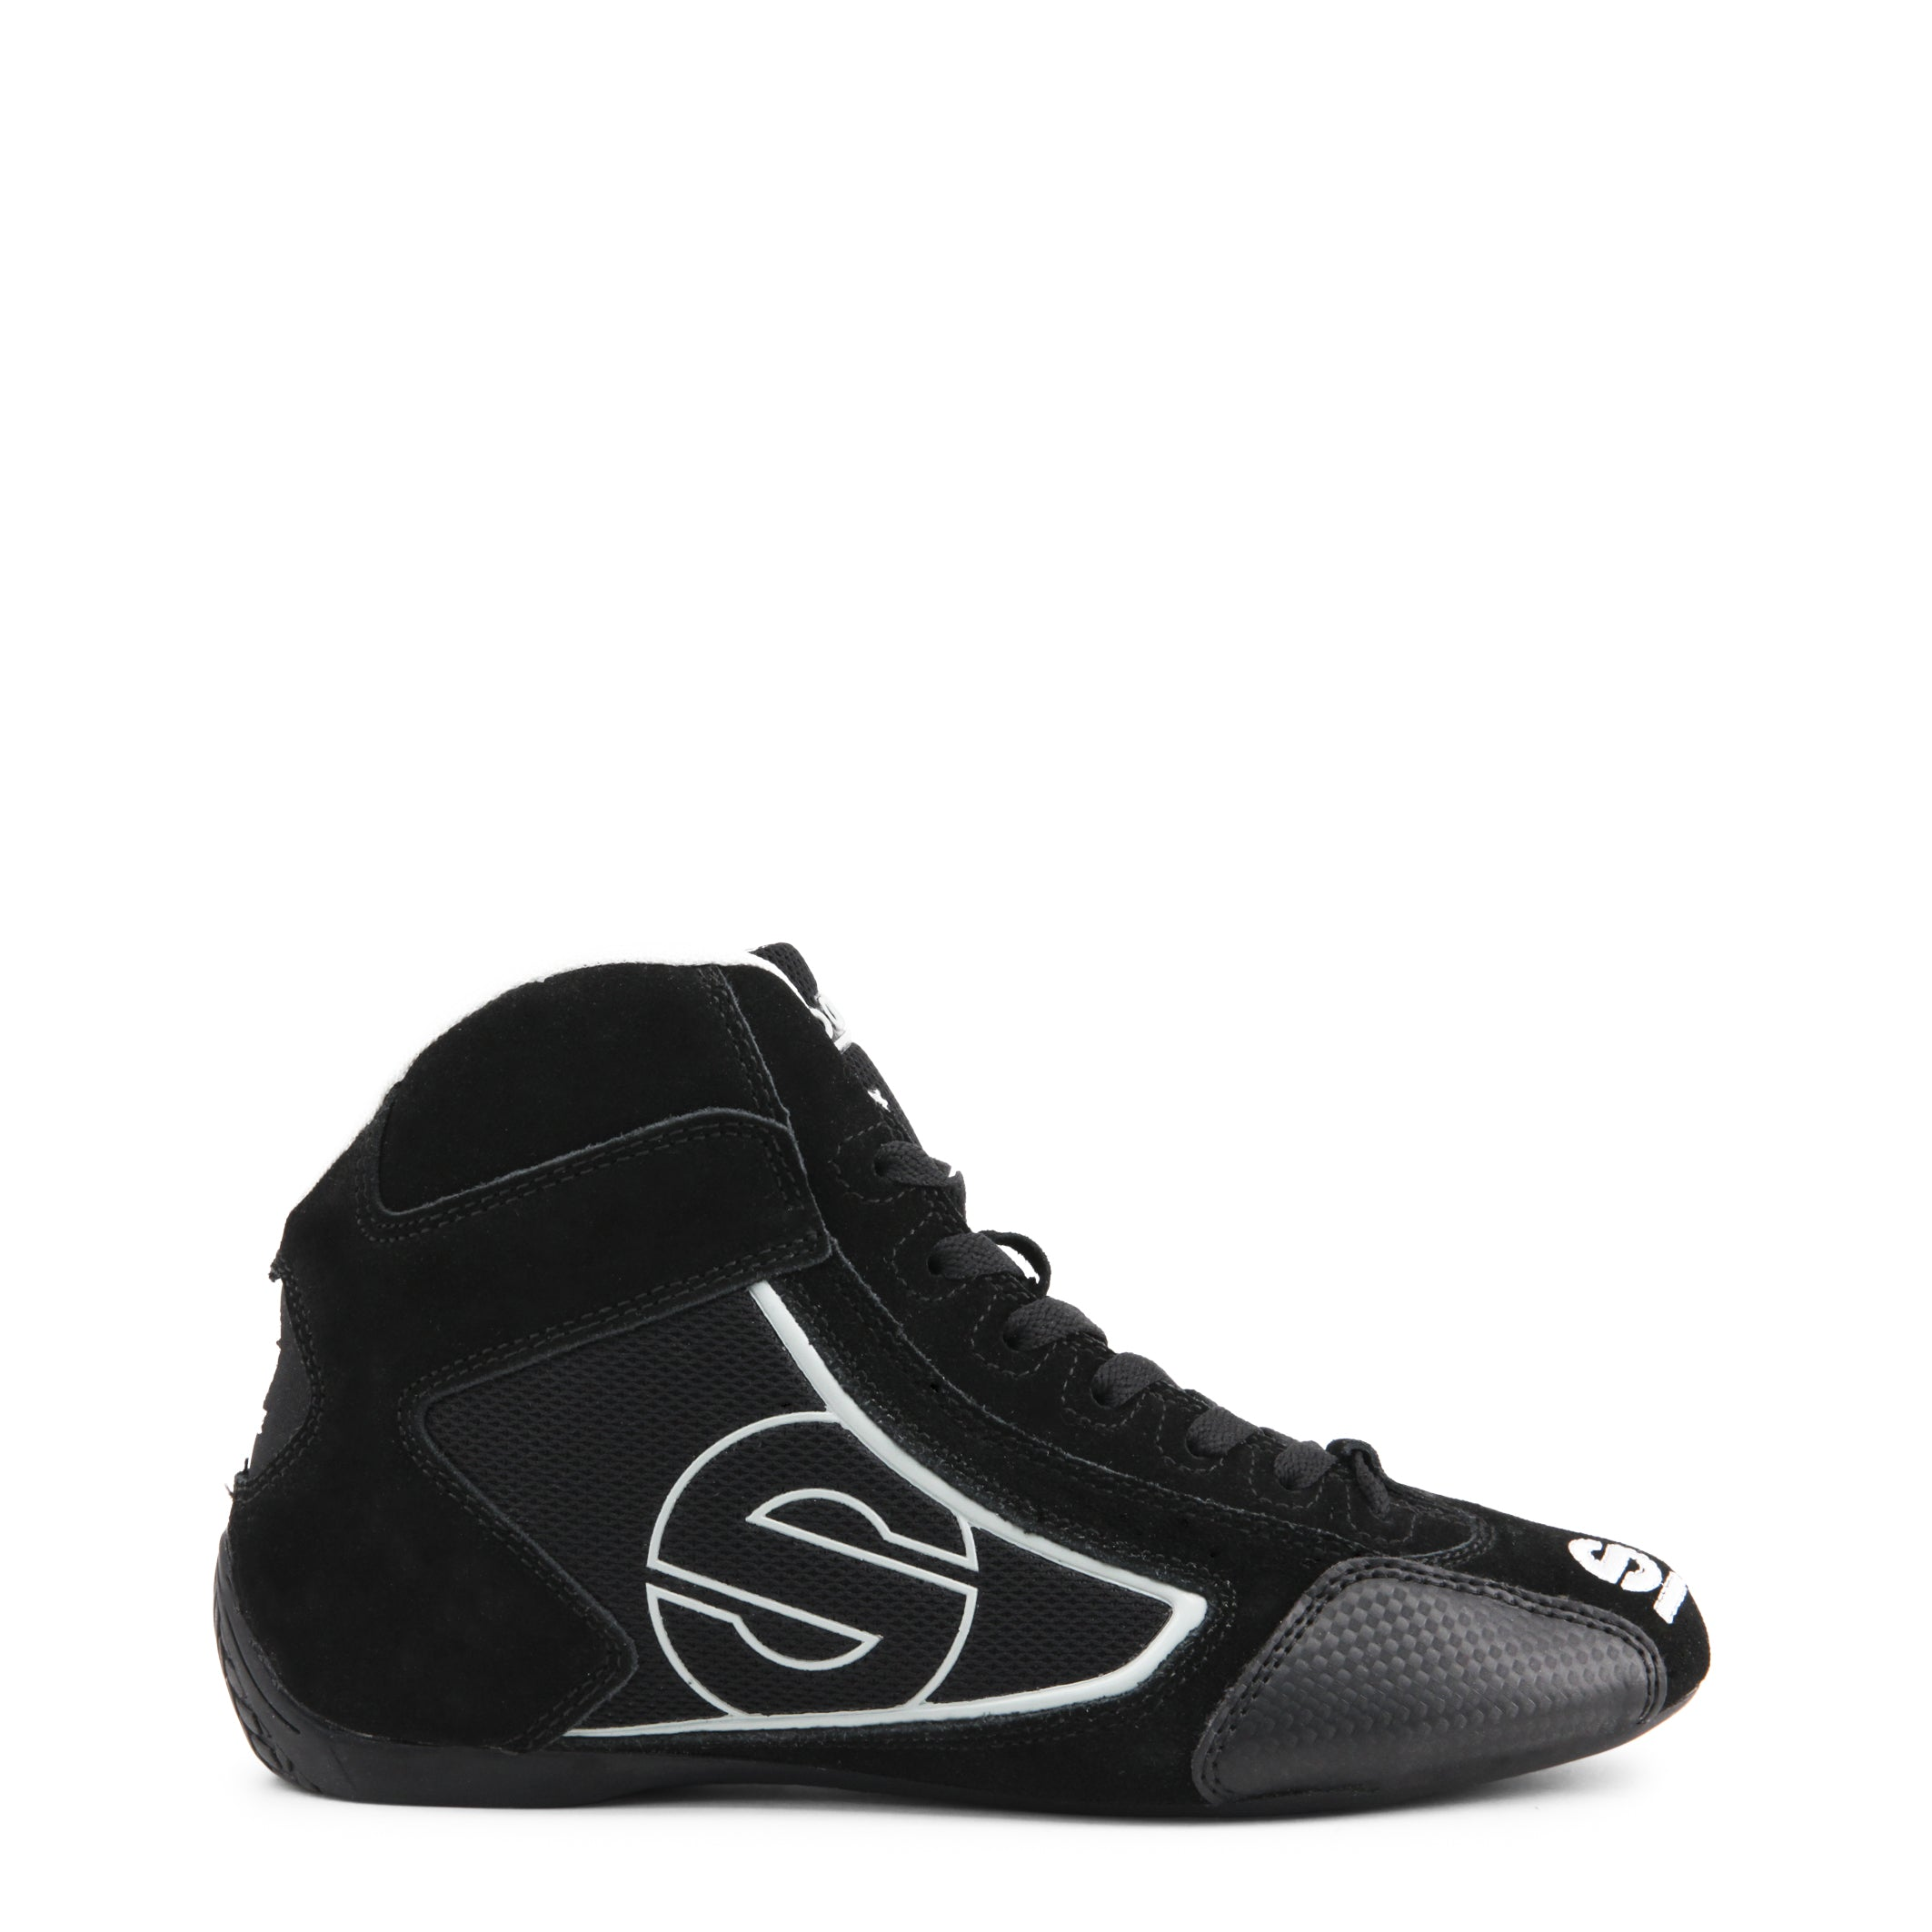 wholesale dealer fbd0a 03ab0 ... Men Women Sparco YAS-MID Long-term reputation Beautiful List of of of  ...